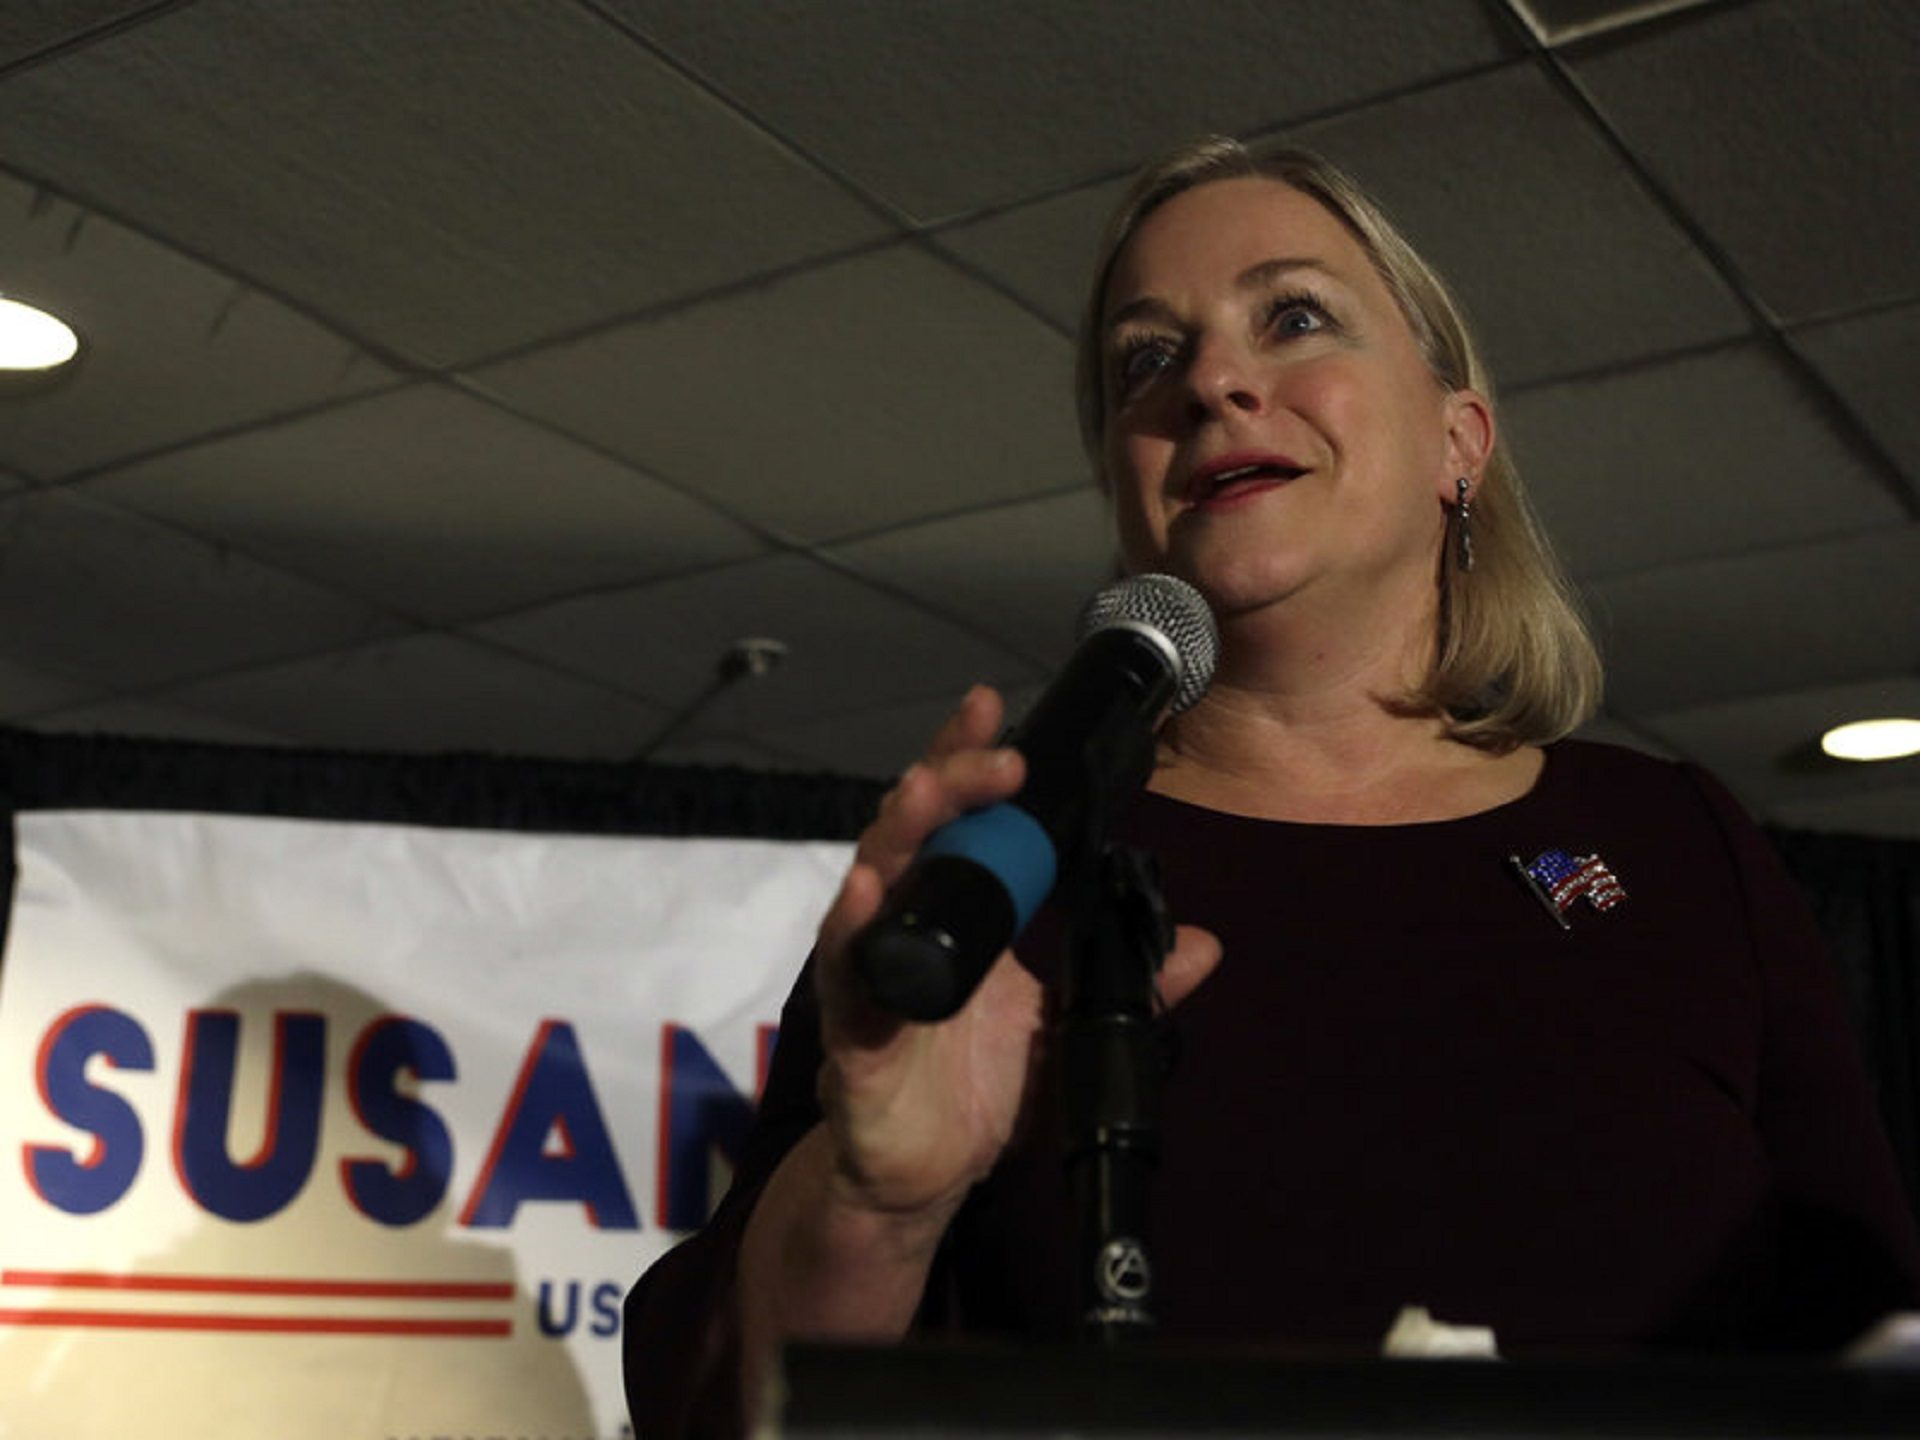 Rep. Susan Wild, D-Pa., won her House seat by a razor-thin margin in 2018. Her support for an impeachment inquiry risks alienating voters in a closely divided swing district.